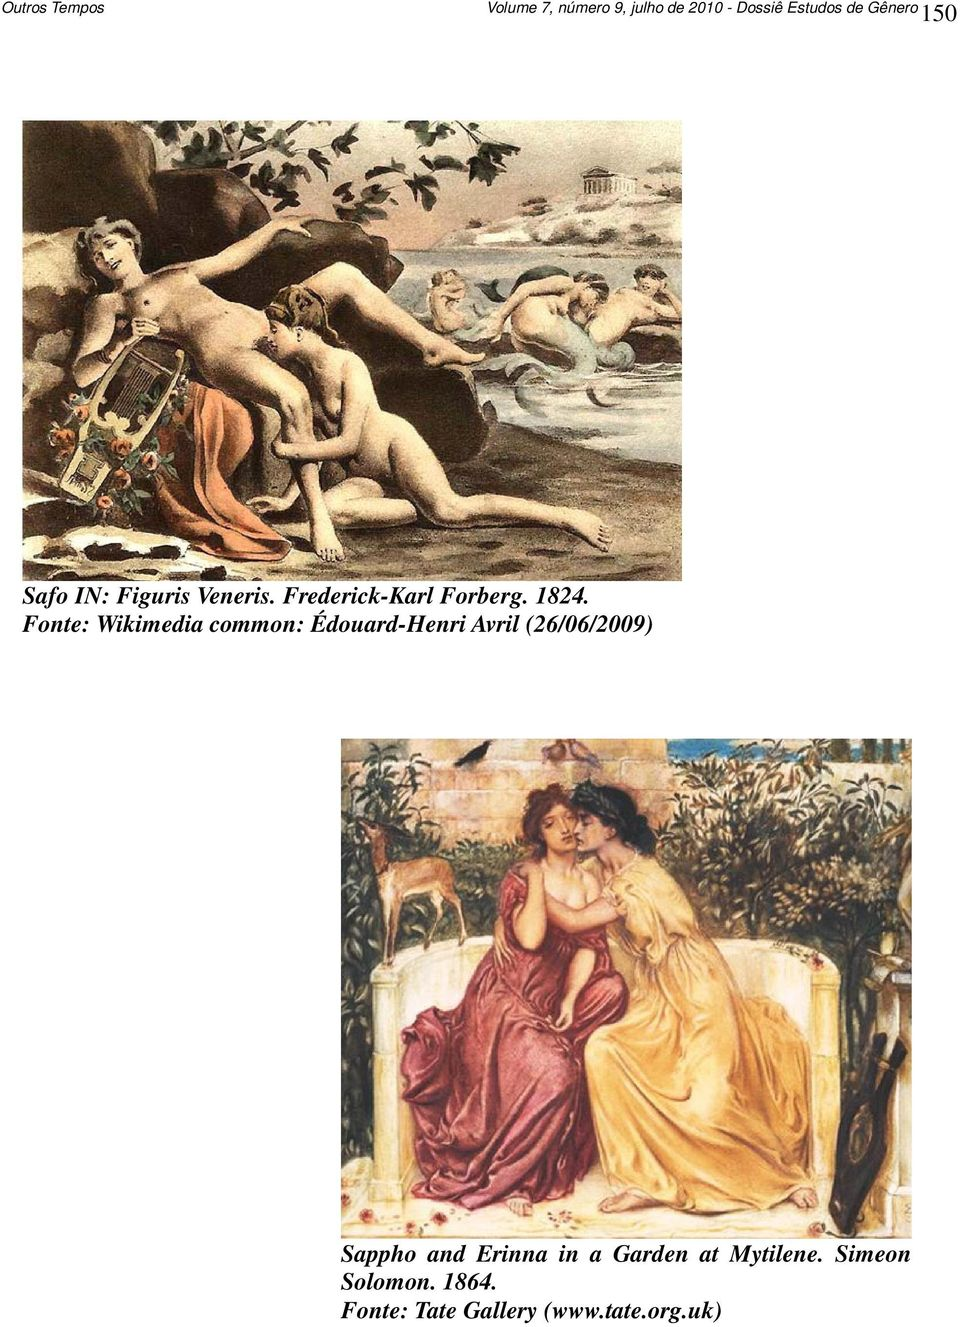 Fonte: Wikimedia common: Édouard-Henri Avril (26/06/2009) Sappho and